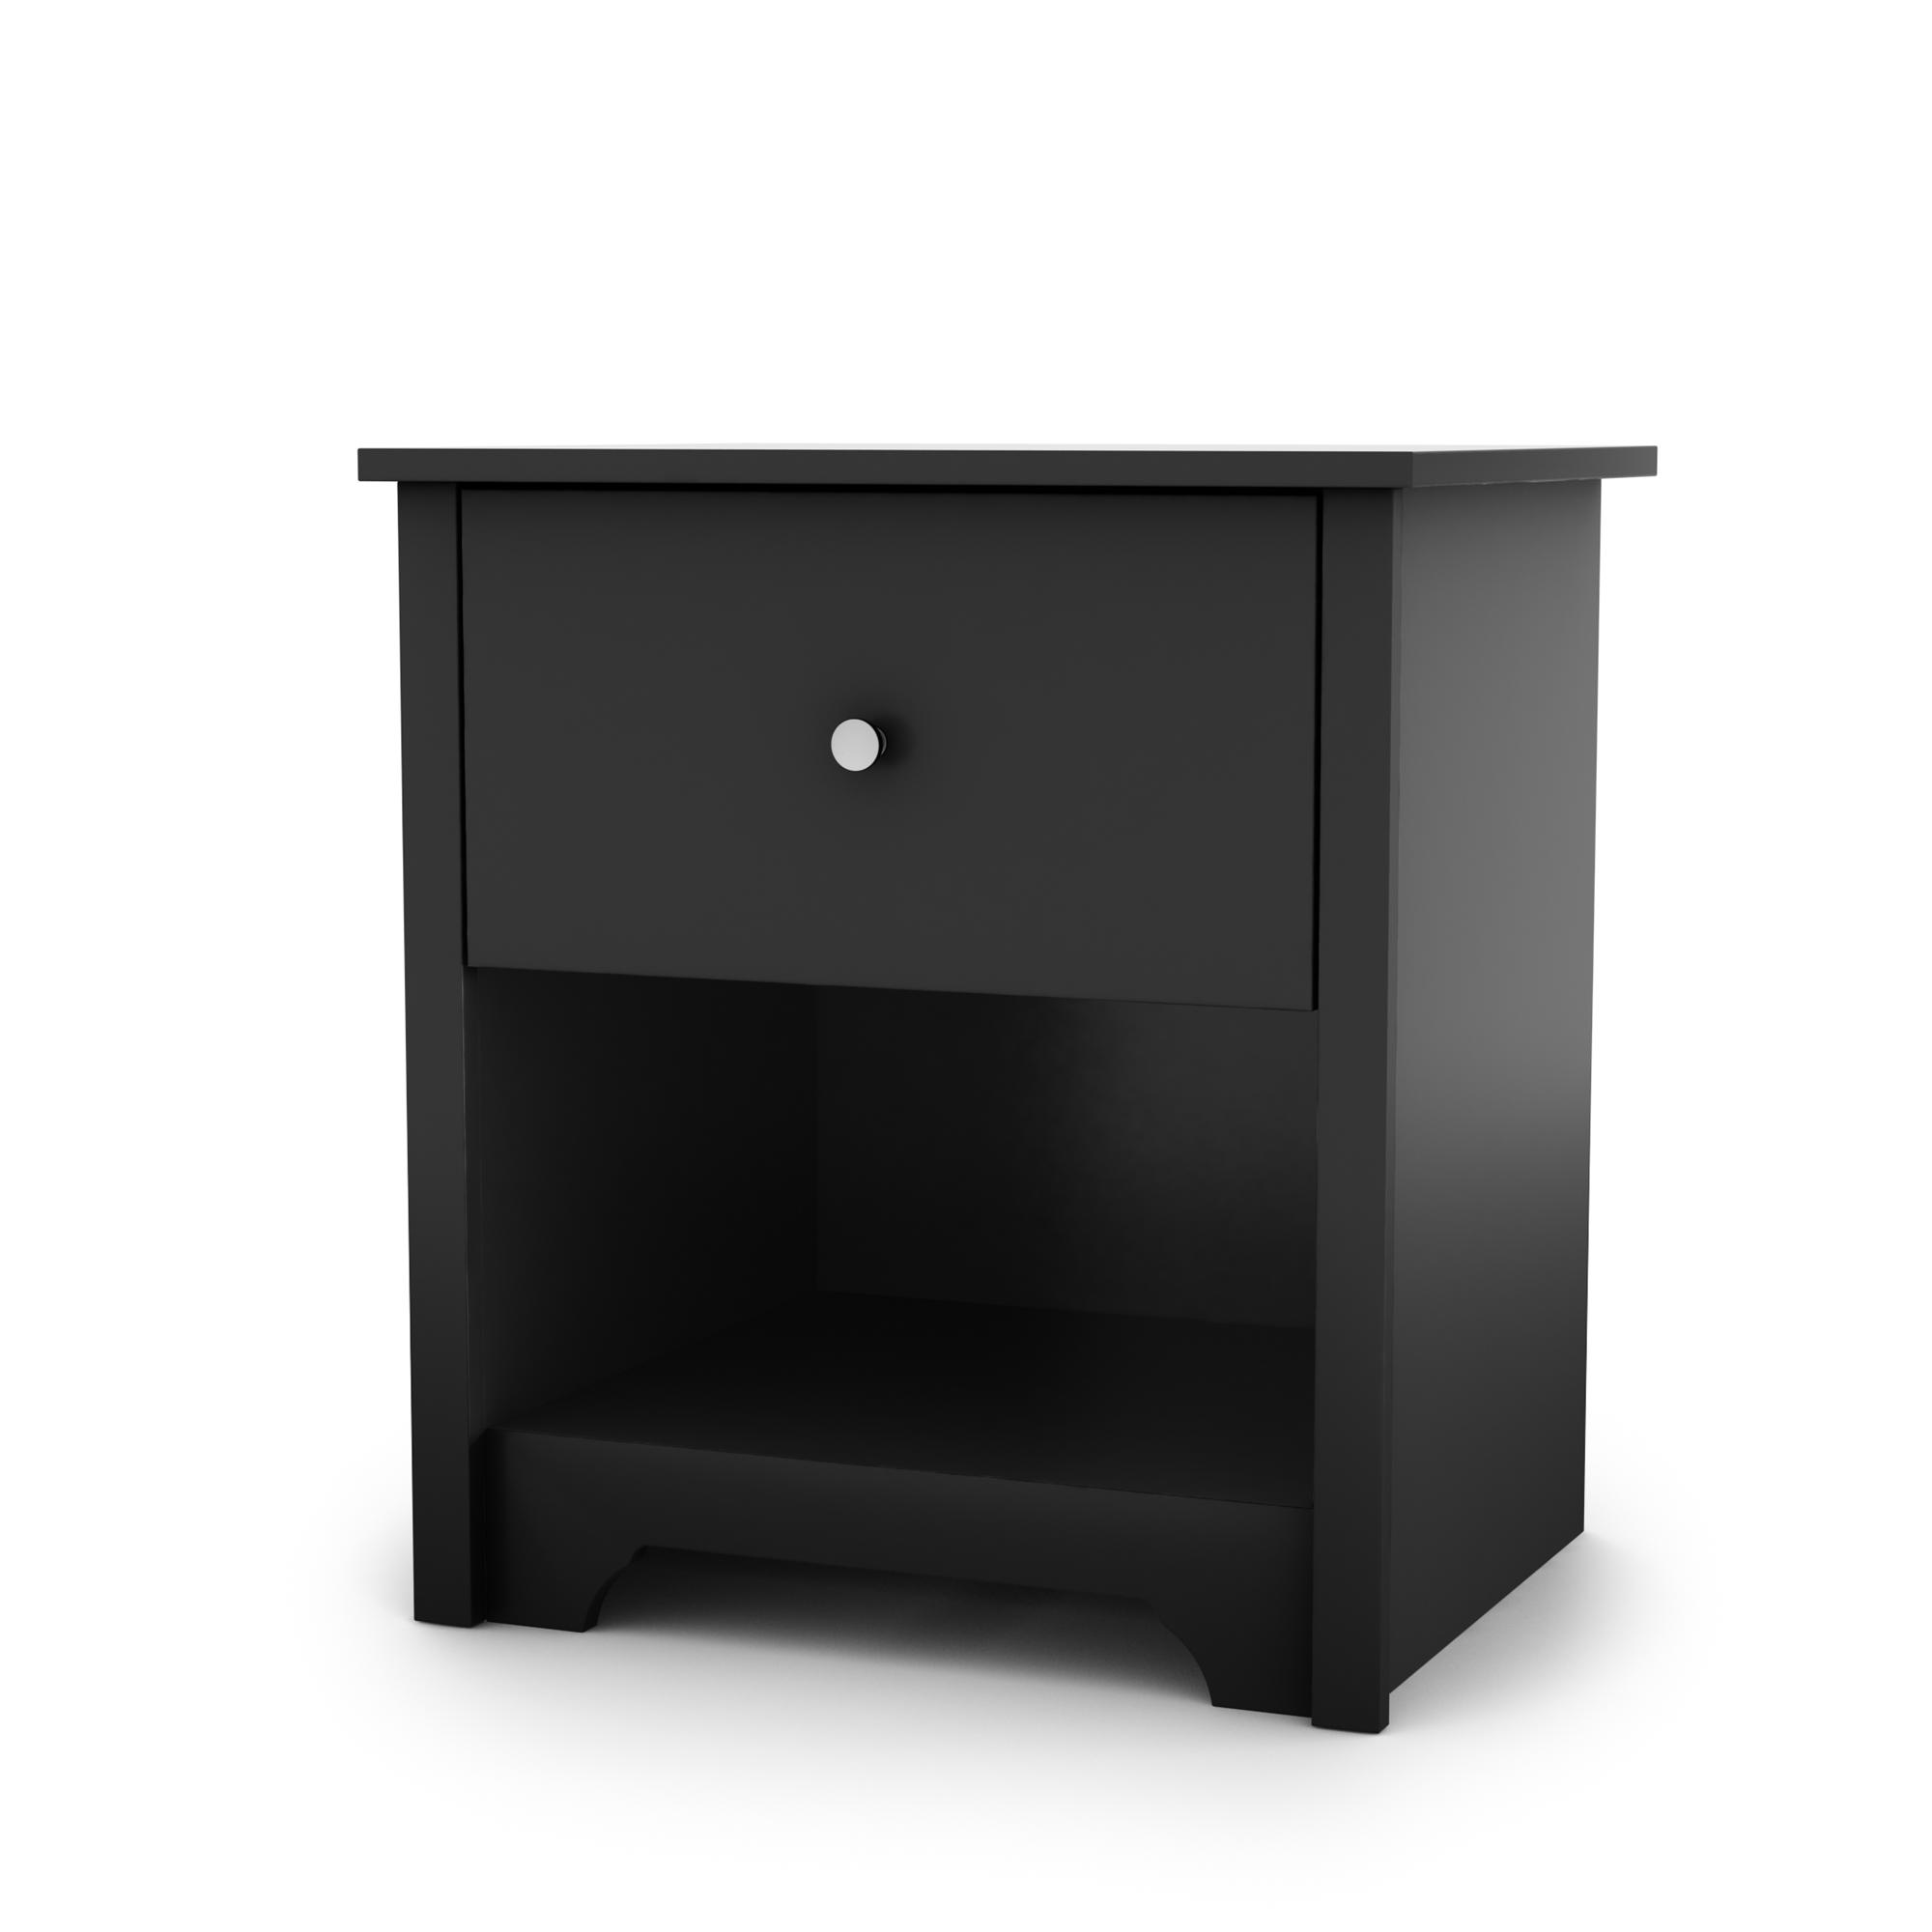 Amazon.com: South Shore Vito Collection 5-Drawer Chest, Black: Kitchen & Dining